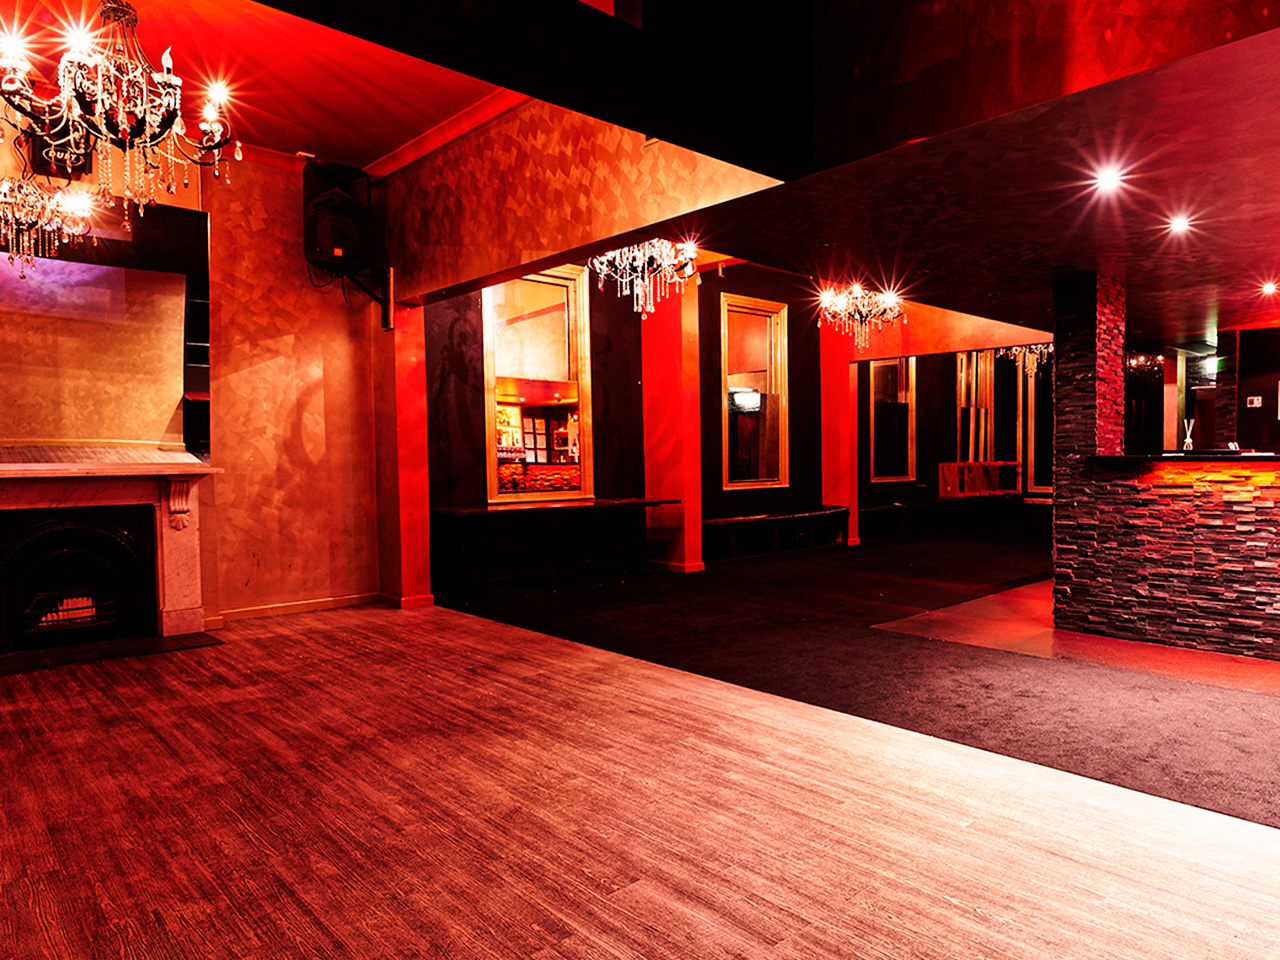 Empty Function Room With Chandelier And Red Lighting